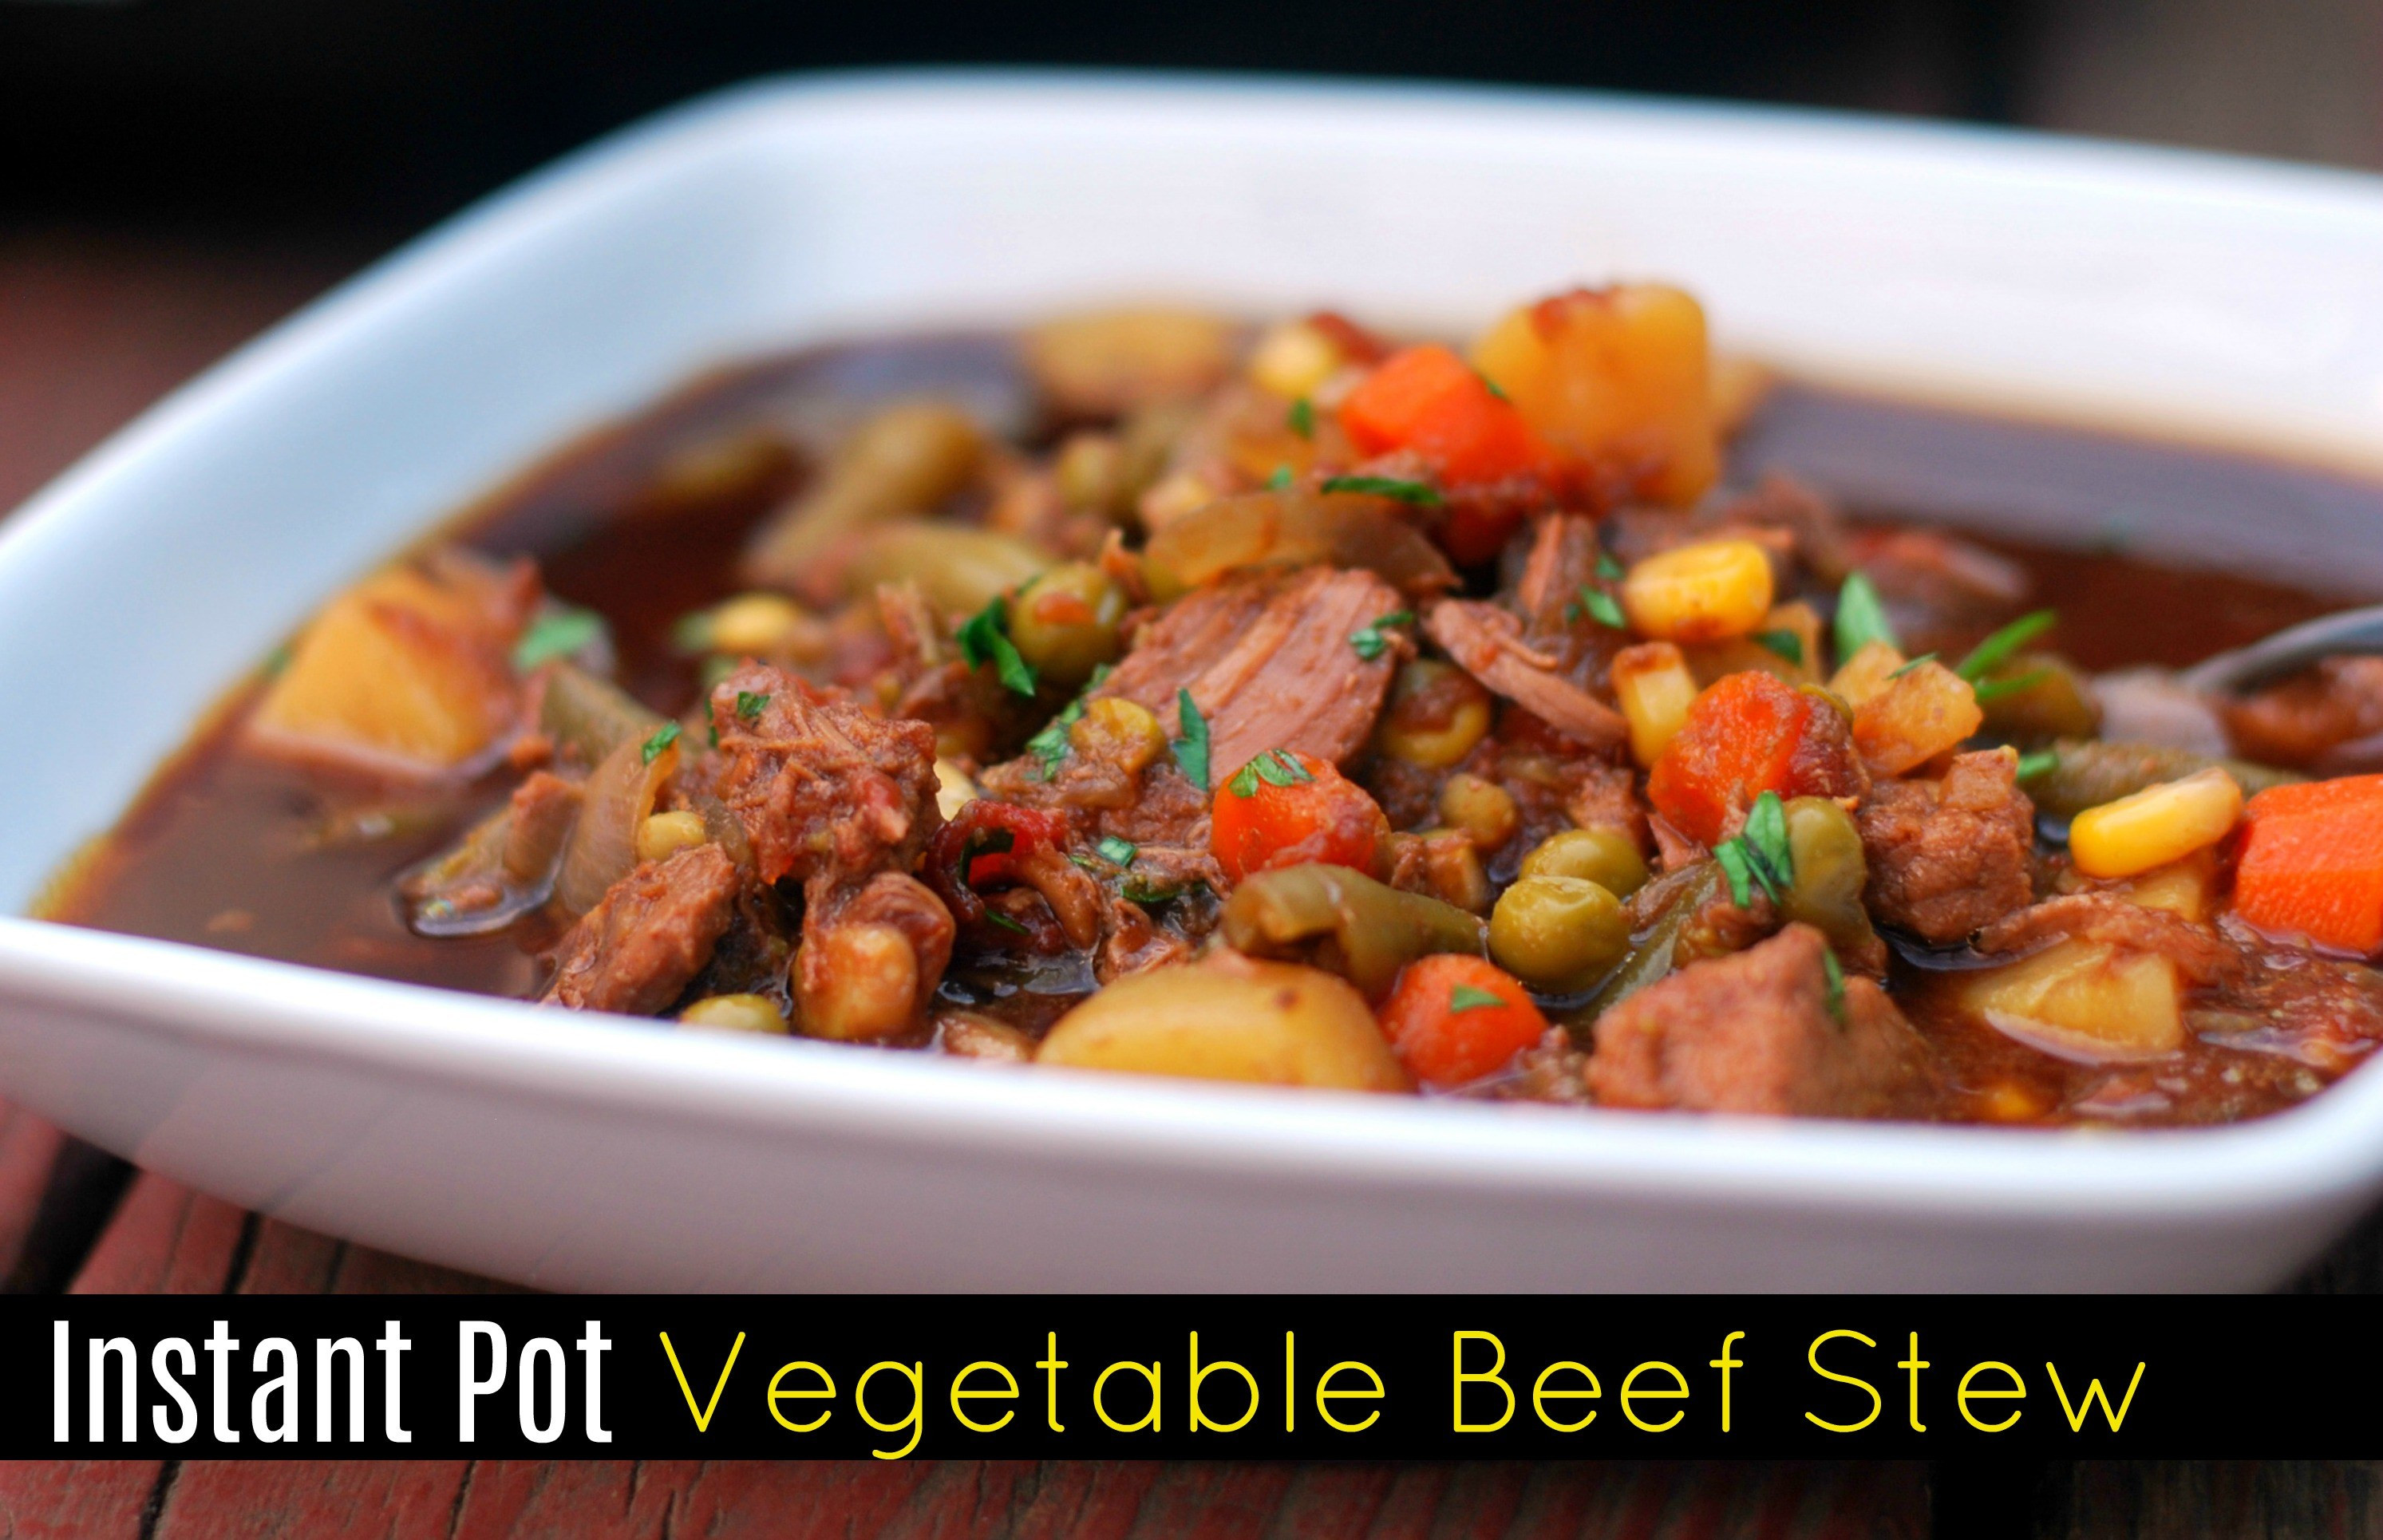 Beef Stew Instant Pot Recipe  Instant Pot Ve able Beef Stew Aunt Bee s Recipes